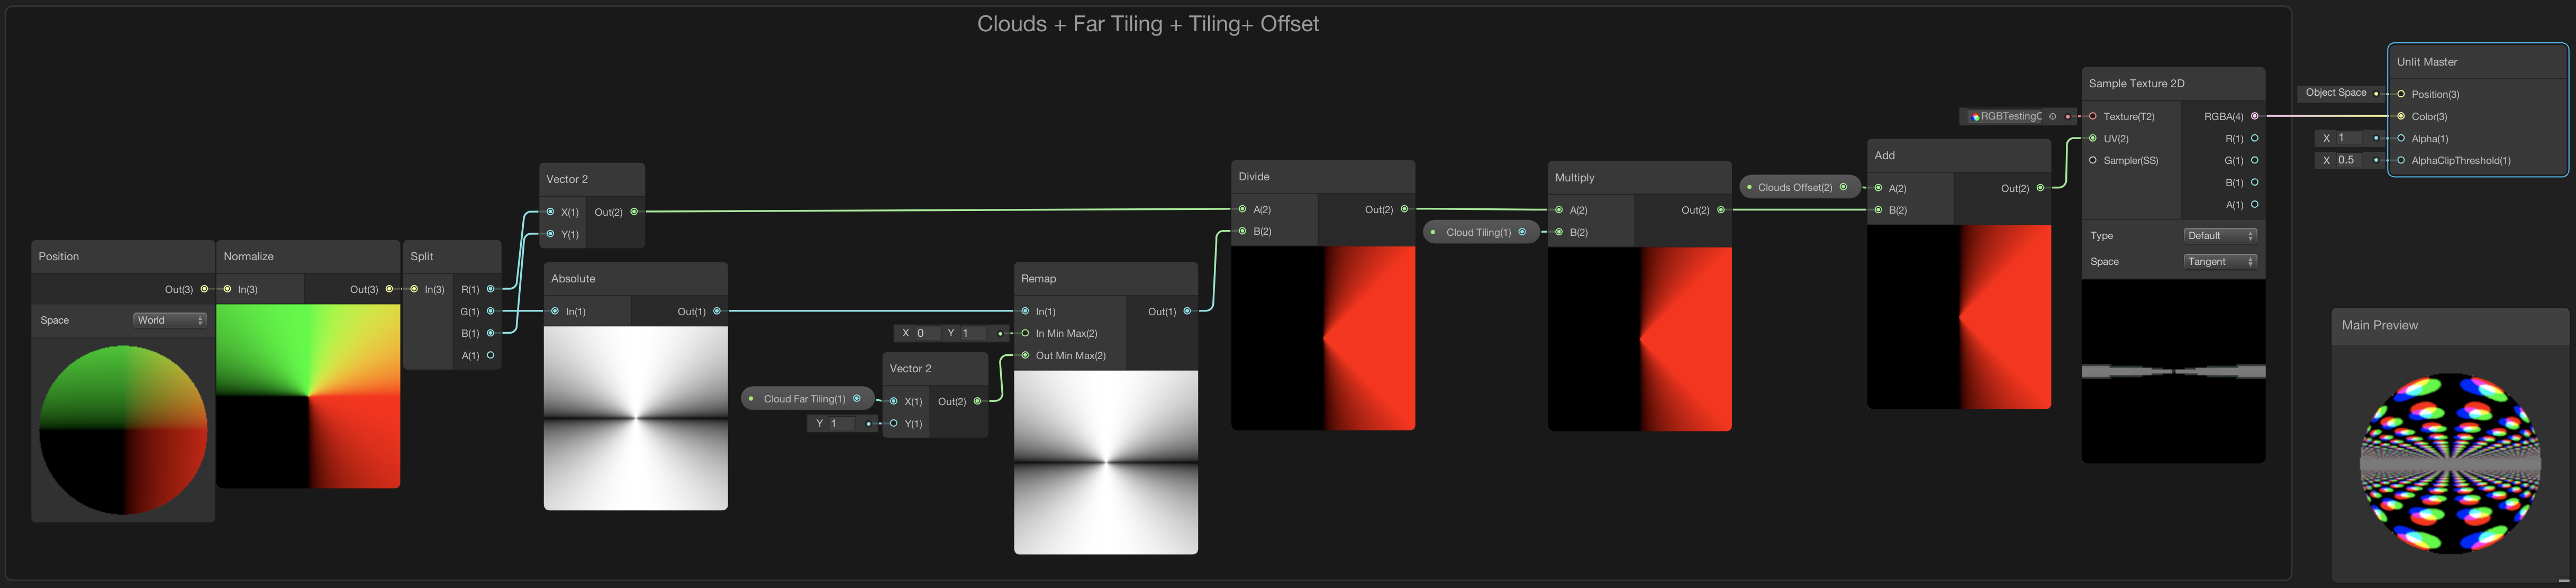 Image displaying the shader graph node setup to add texture offset to the clouds layer.